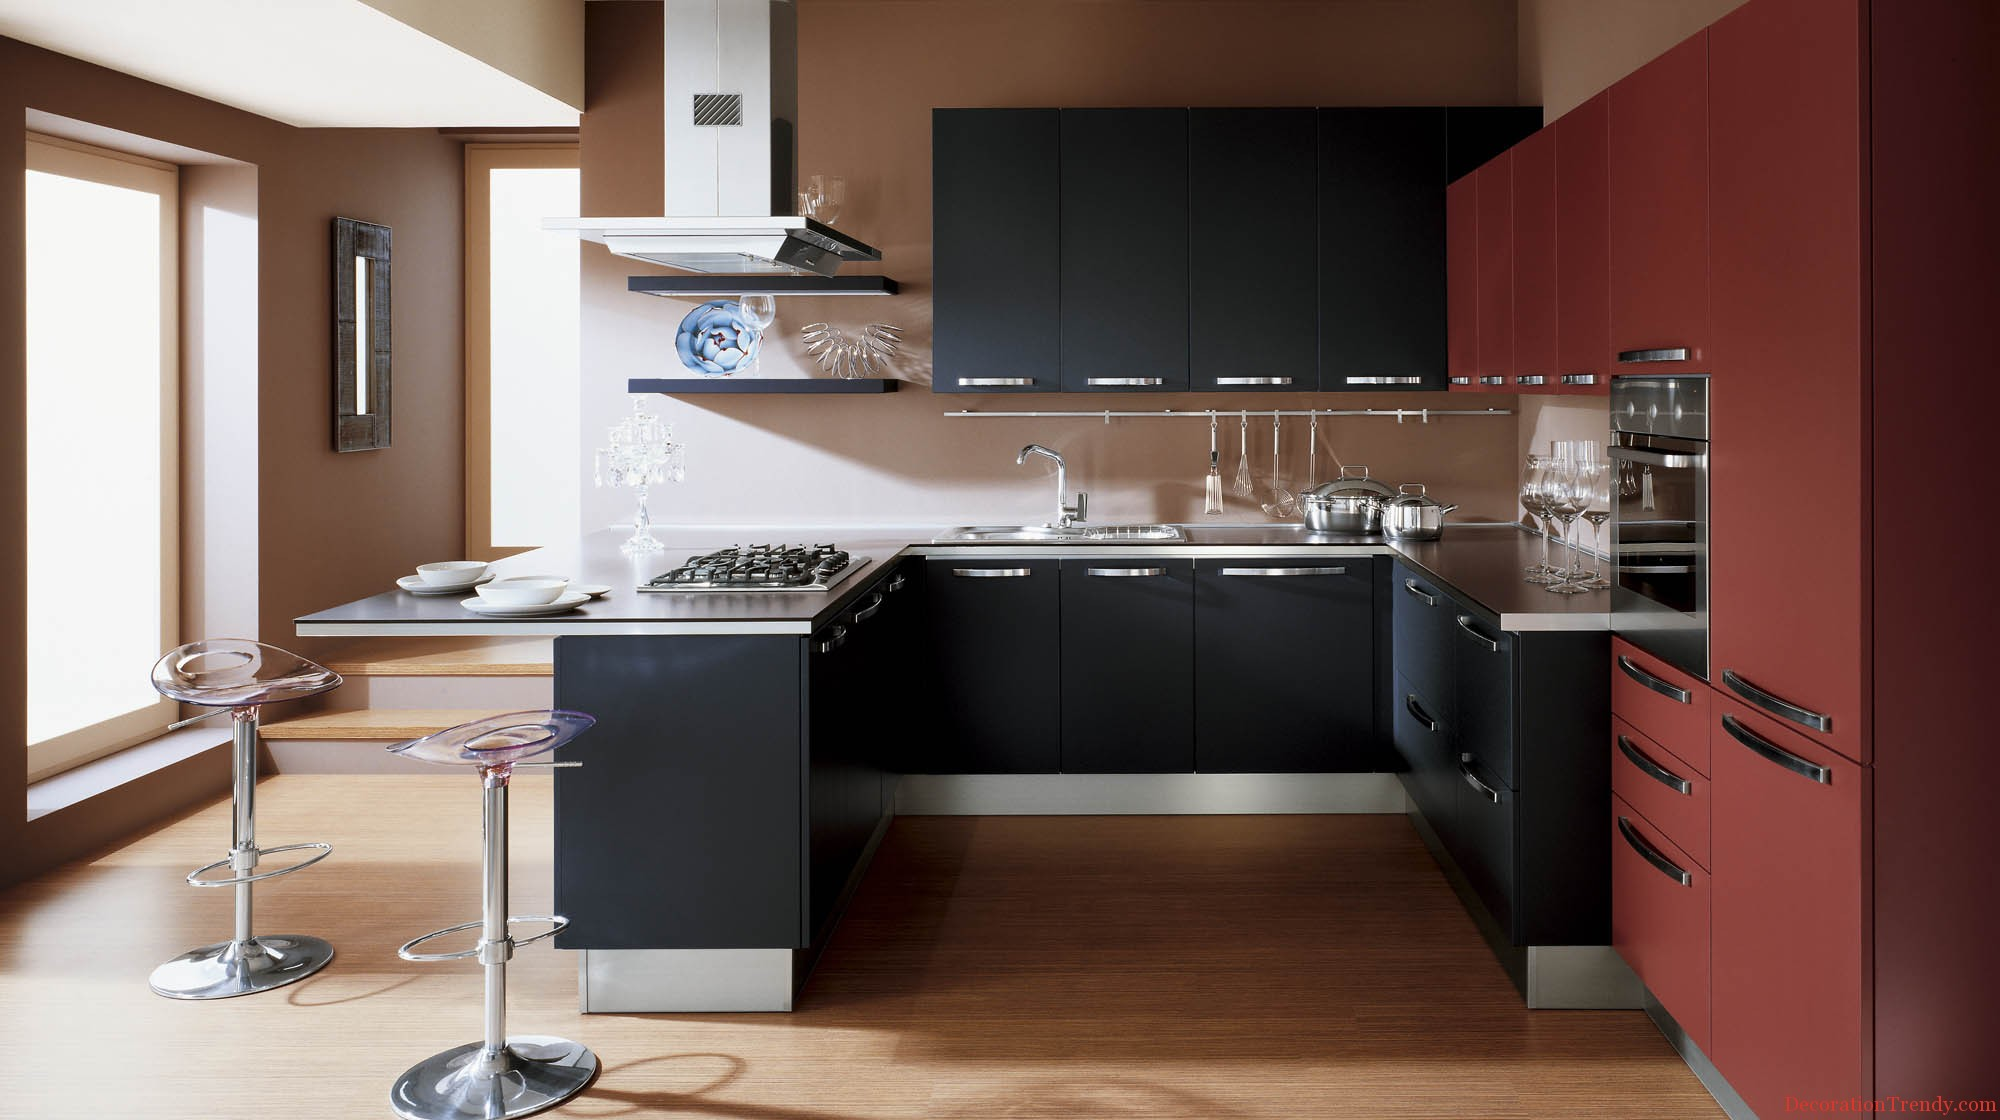 contemporary small kitchen design black red cabinet dining kitchen designs small kitchen kitchen sleek kitchen designs